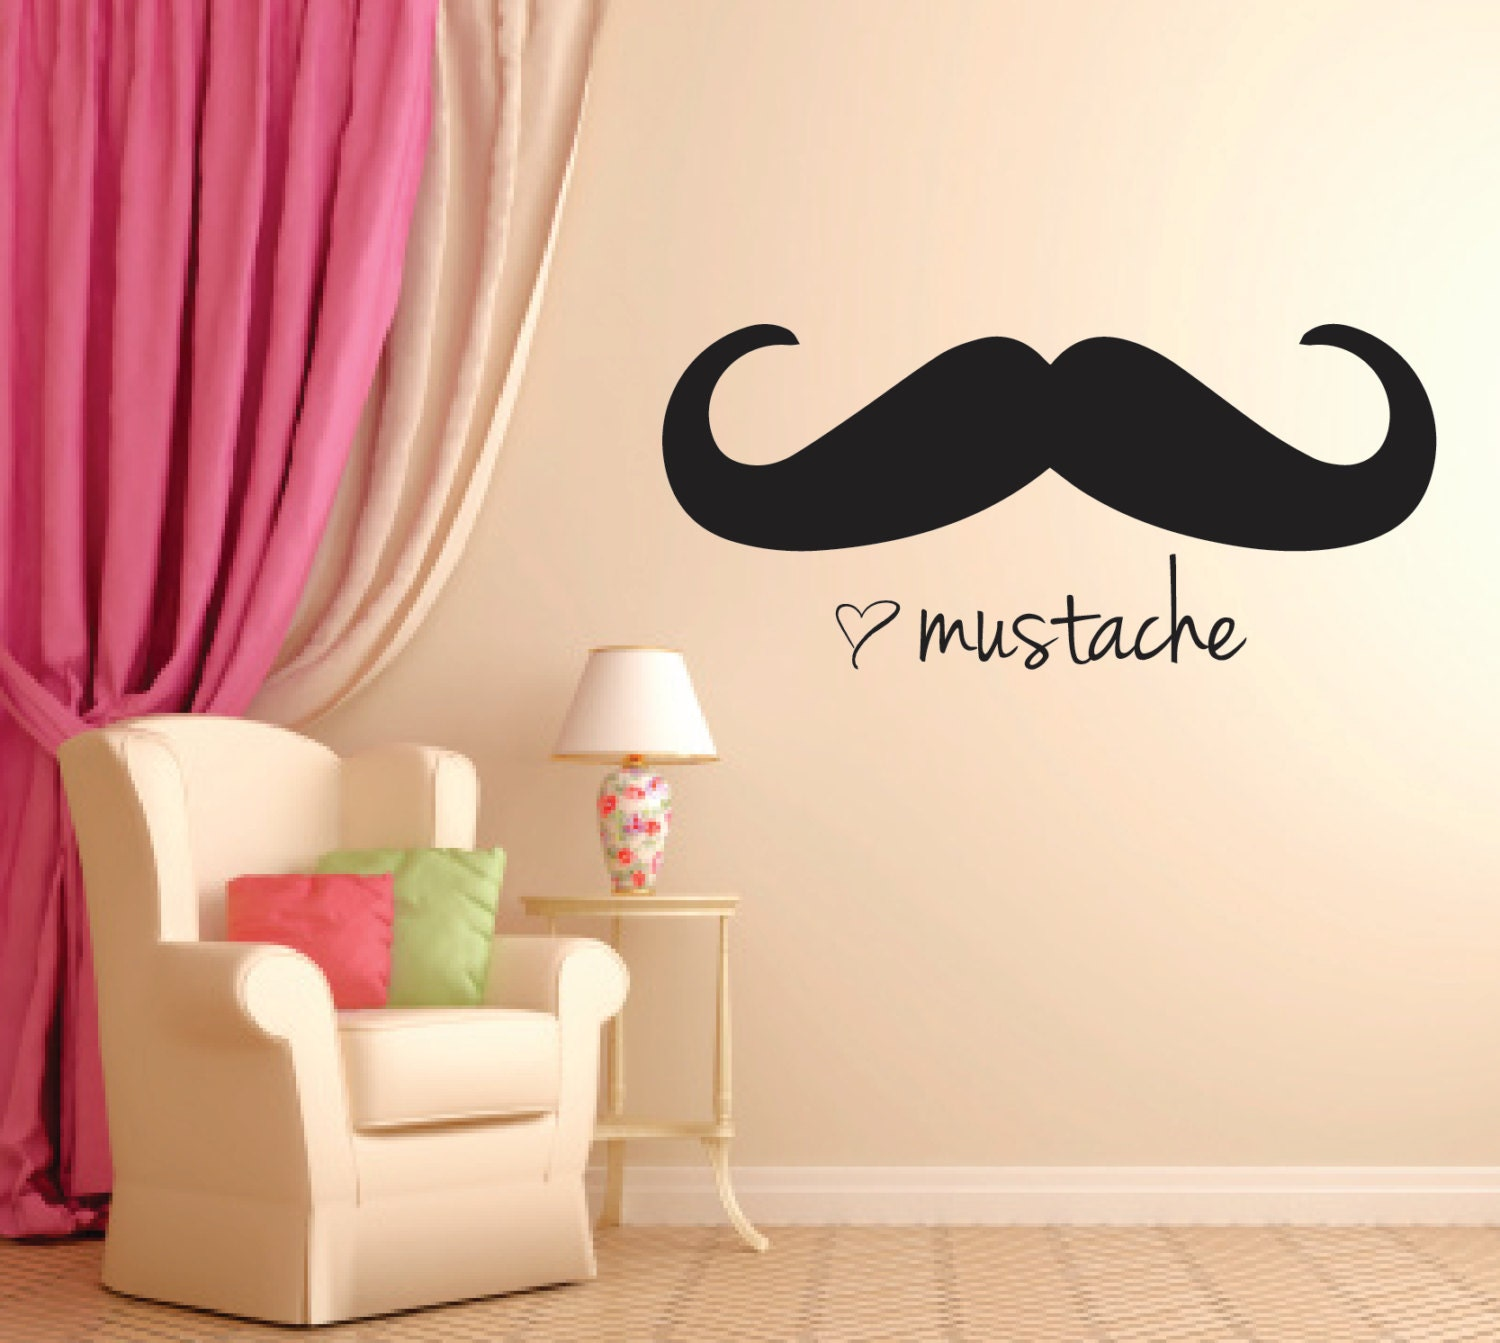 Wall Art Stickers Gumtree : Mustache home decor sale print of by